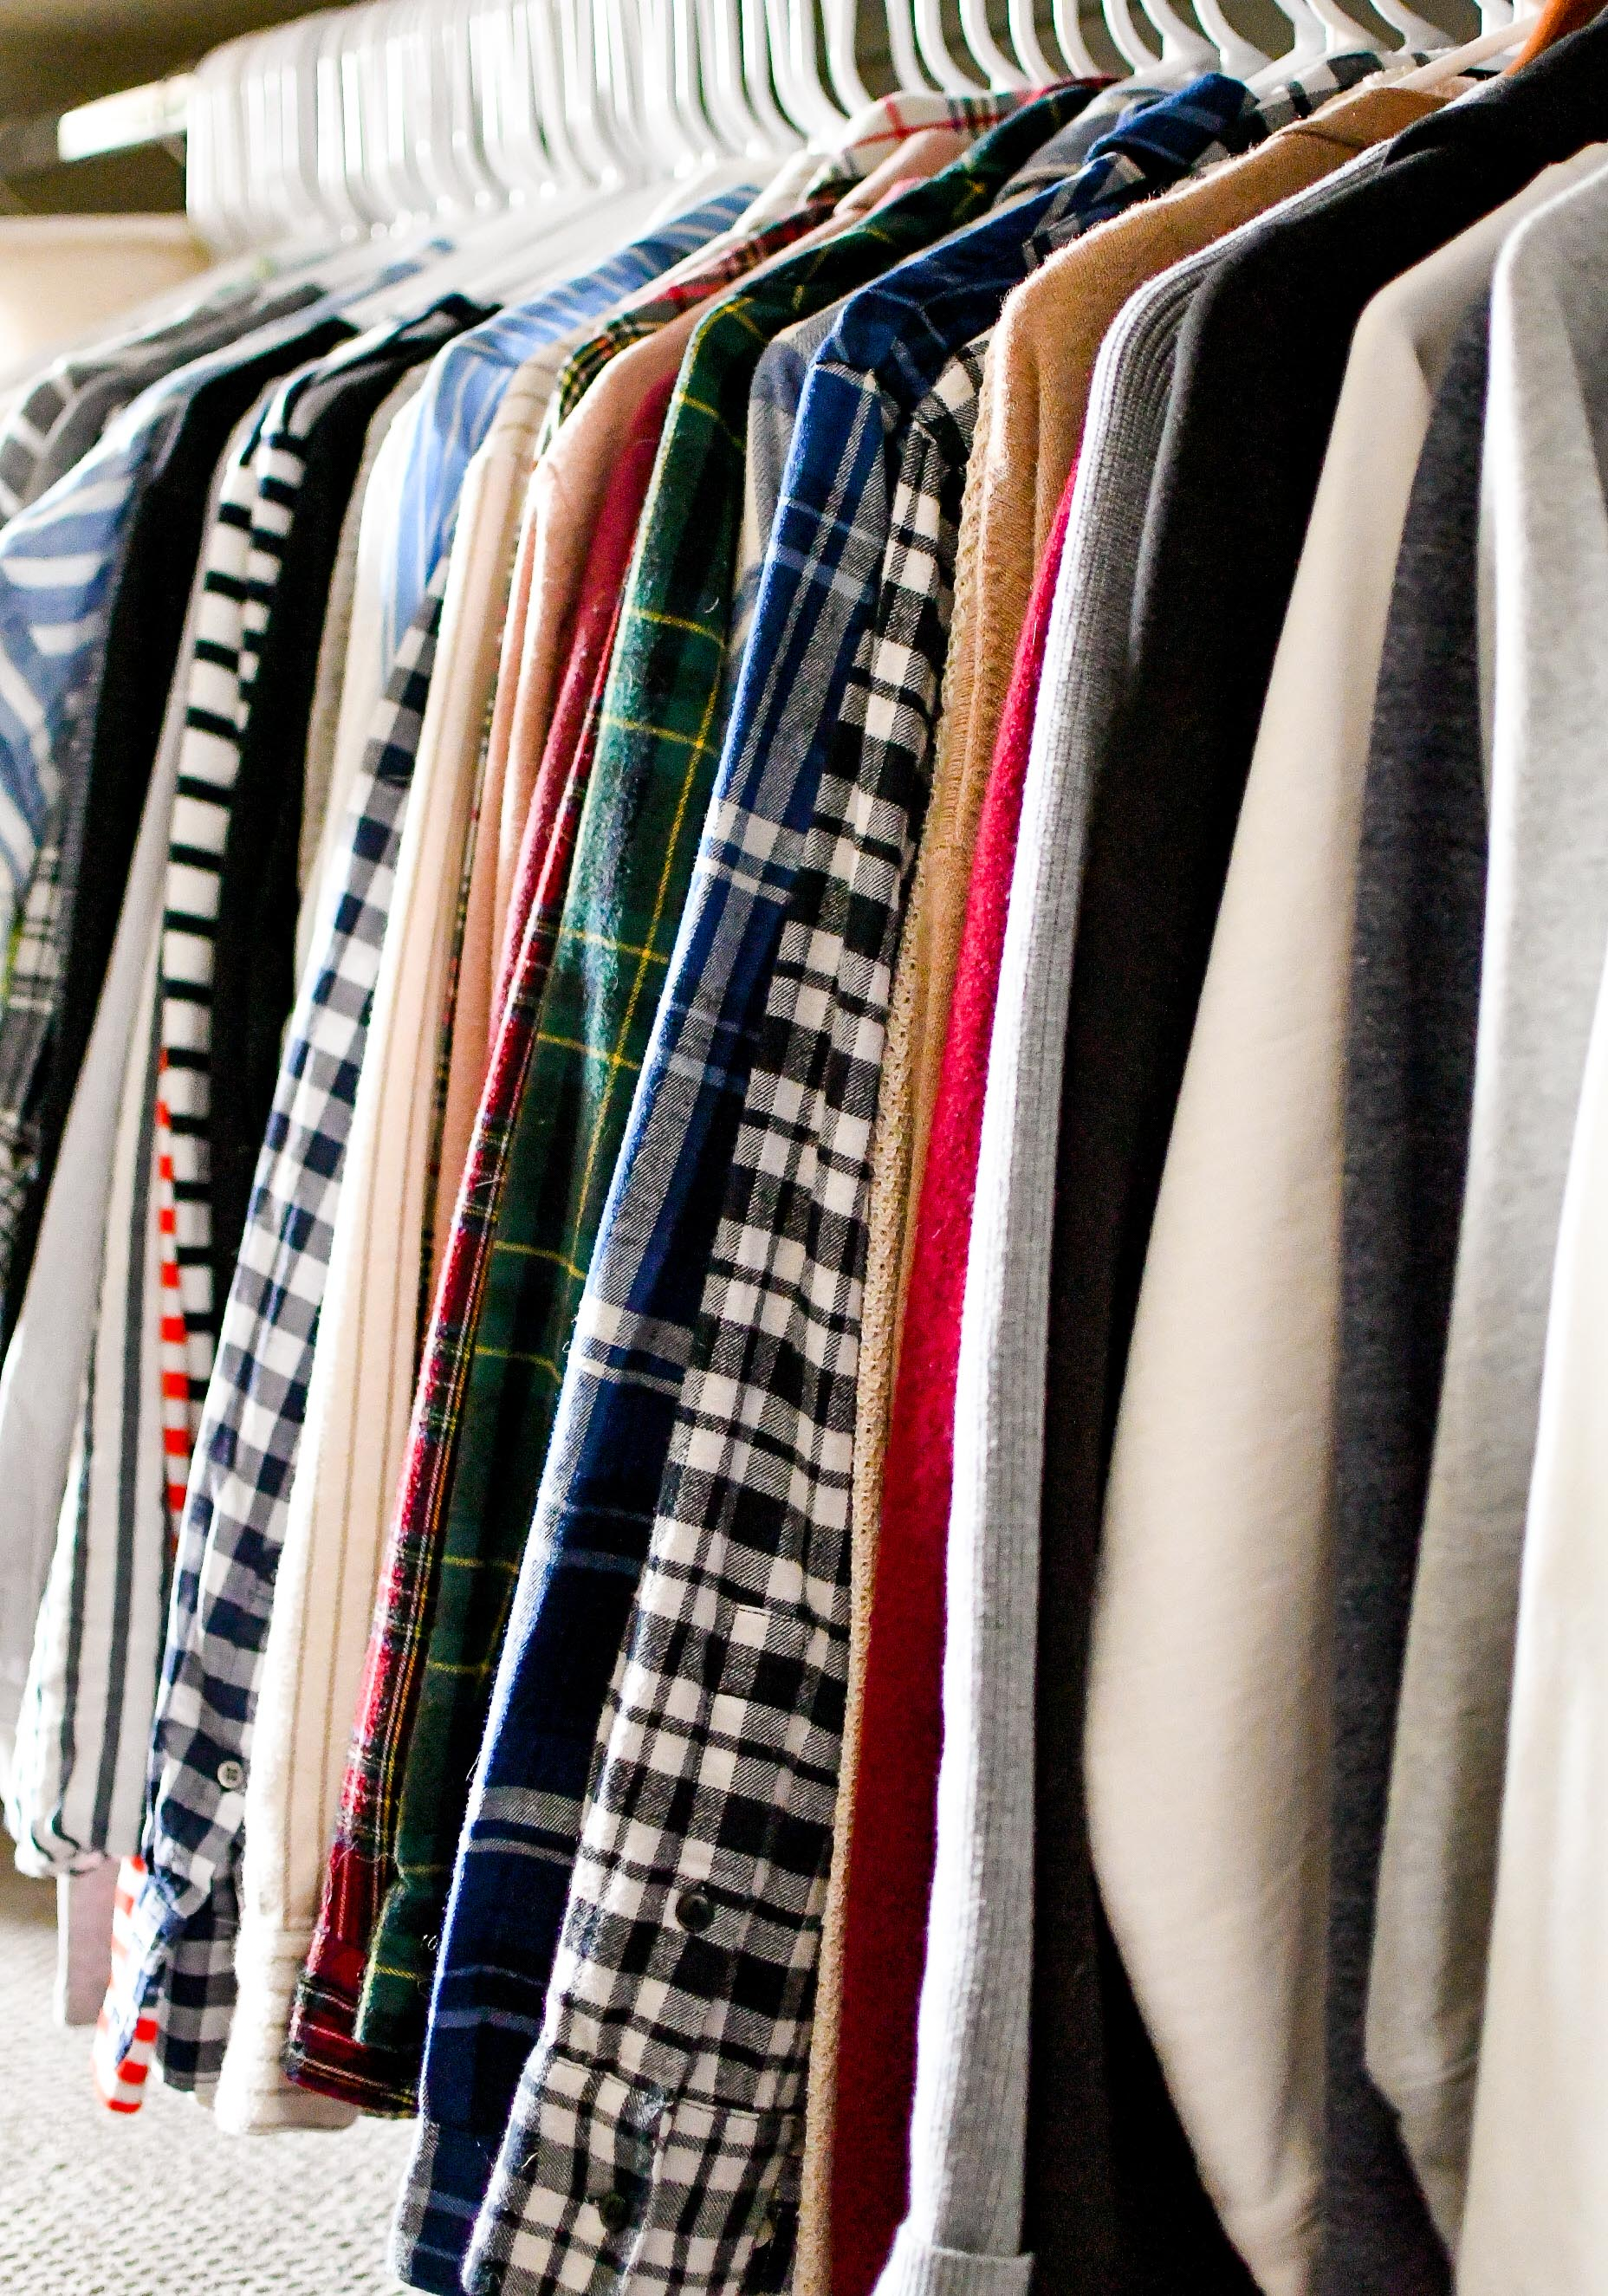 2019 closet inventory: tops, shirts, cardigans, sweatshirts — Cotton Cashmere Cat Hair